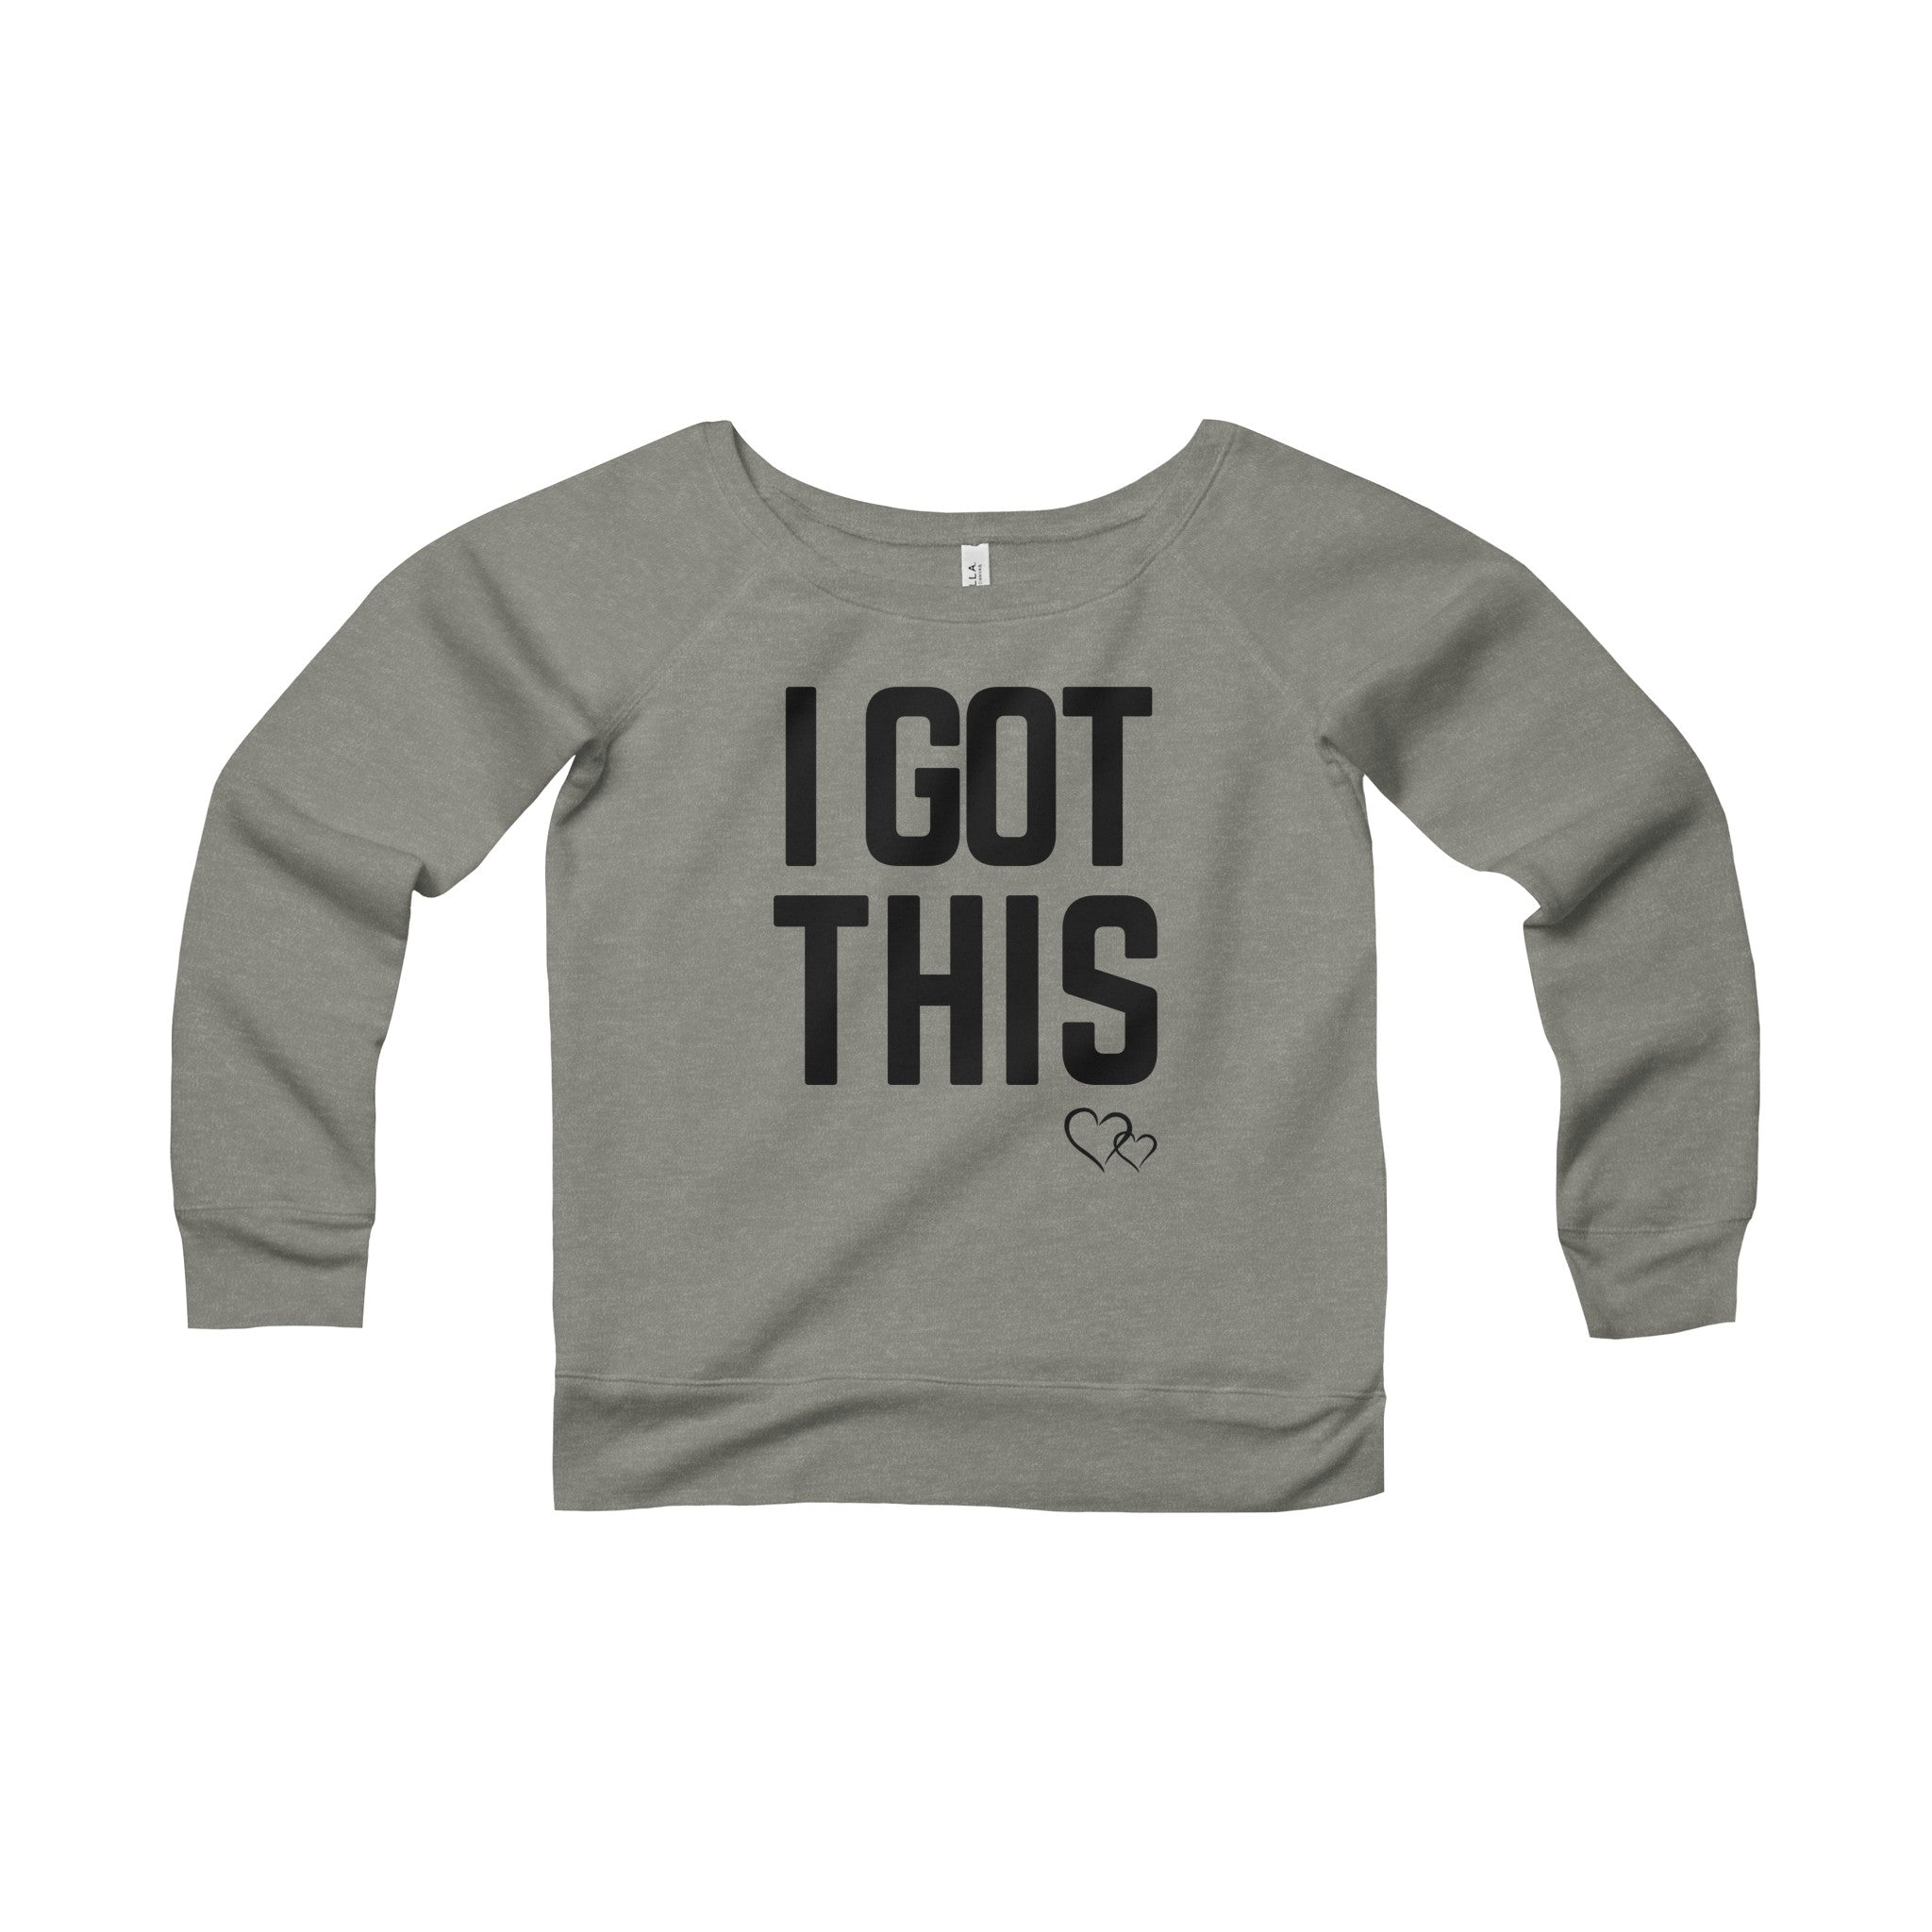 I GOT THIS - Wide Neck Sweatshirt